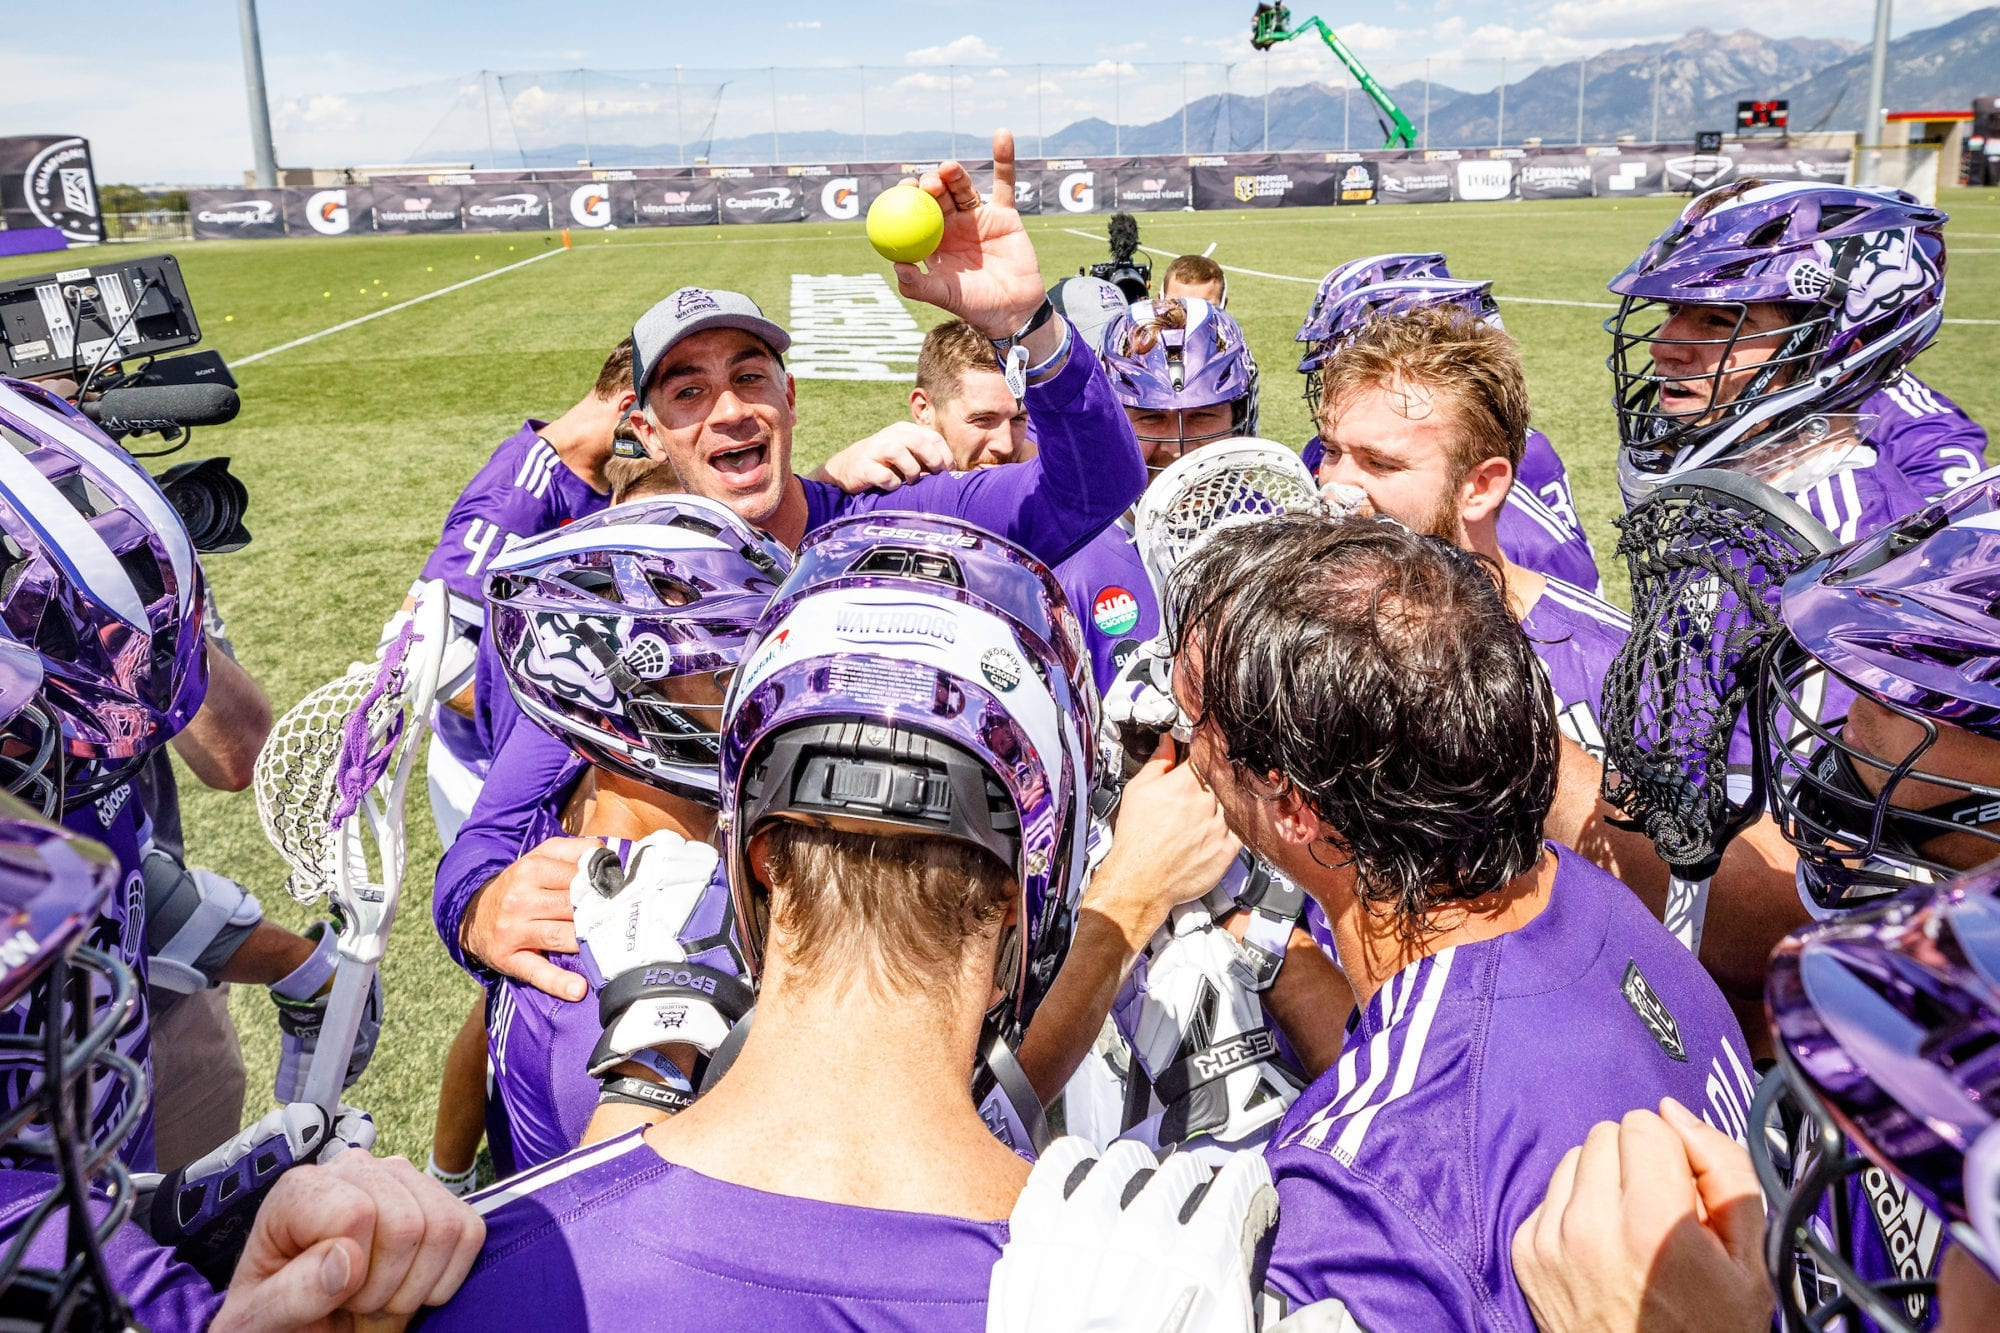 Waterdogs PLL Premier Lacrosse League PLL Championship Series first win